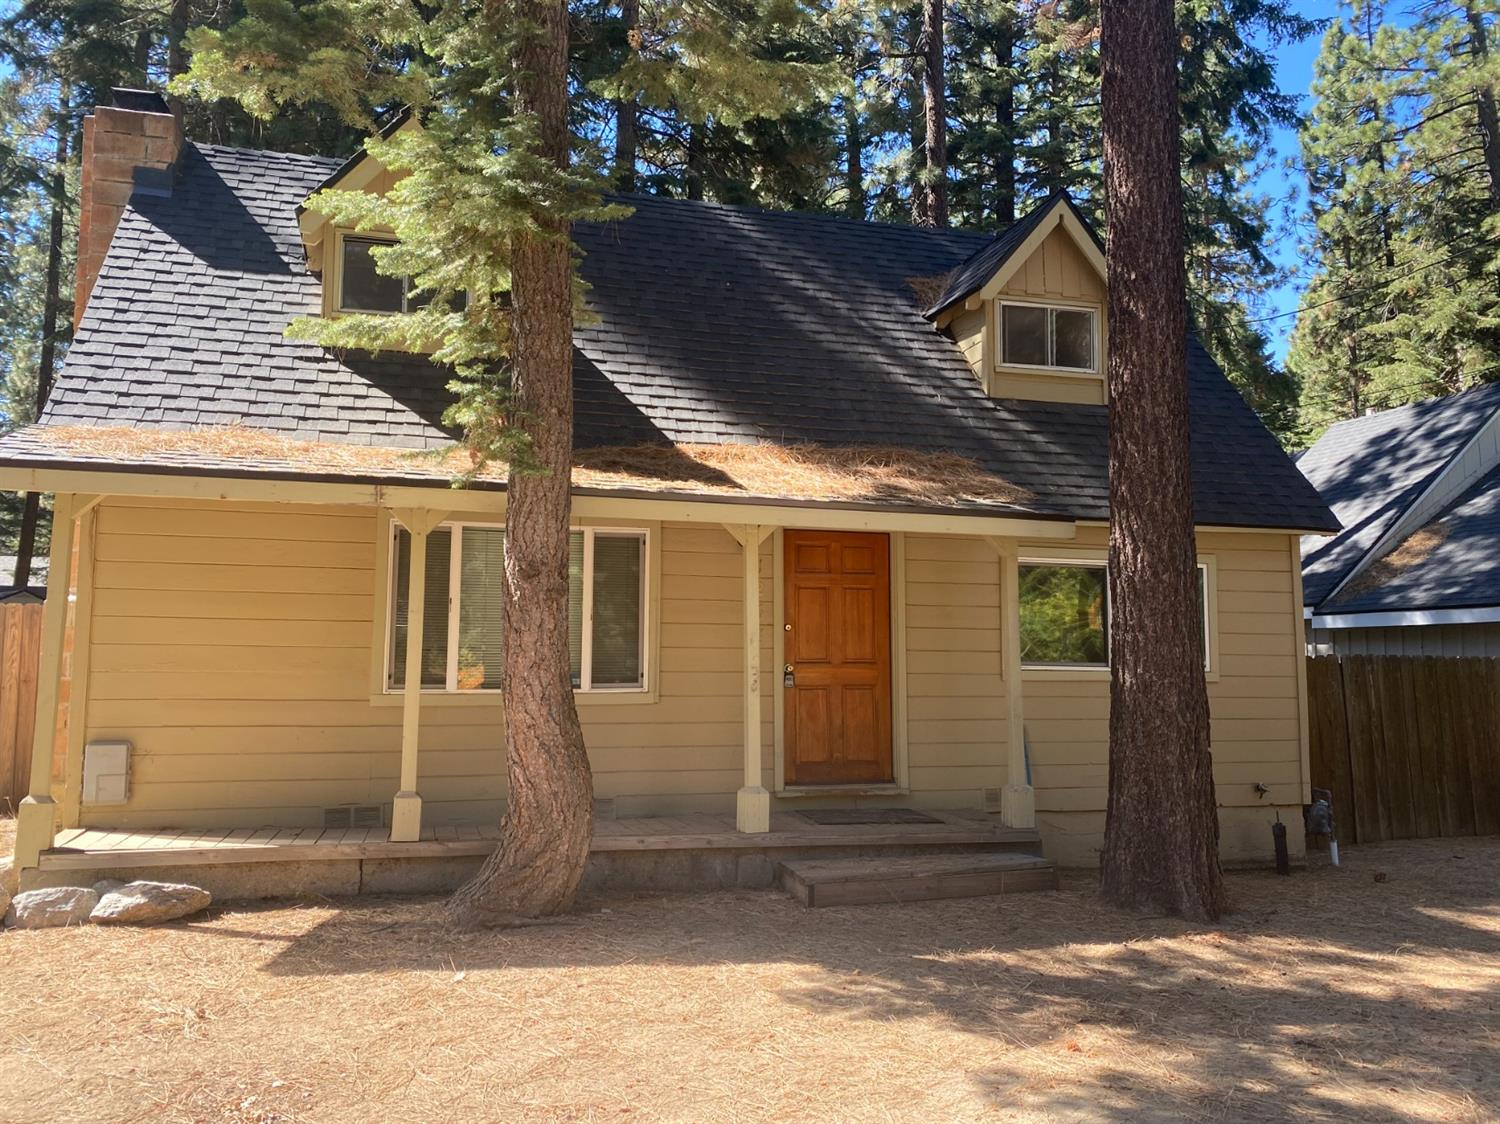 First time on the market in over 40 years!!!! Make this cabin your home, family get away or use as a rental property. The opportunities are endless. The home offers a quaint kitchen with stove, oven and fridge. Knotty pine kitchen cabinets and walls through out the main level. Upstairs is the two bedrooms. Sip your morning coffee on the covered front porch. The spacious fully fenced backyard is perfect for family gatherings. Enjoy all that South Lake Tahoe has to offer, Skiing, shopping, hiking, biking, taking a ride on a snow mobile or just relax on one of our many beaches.